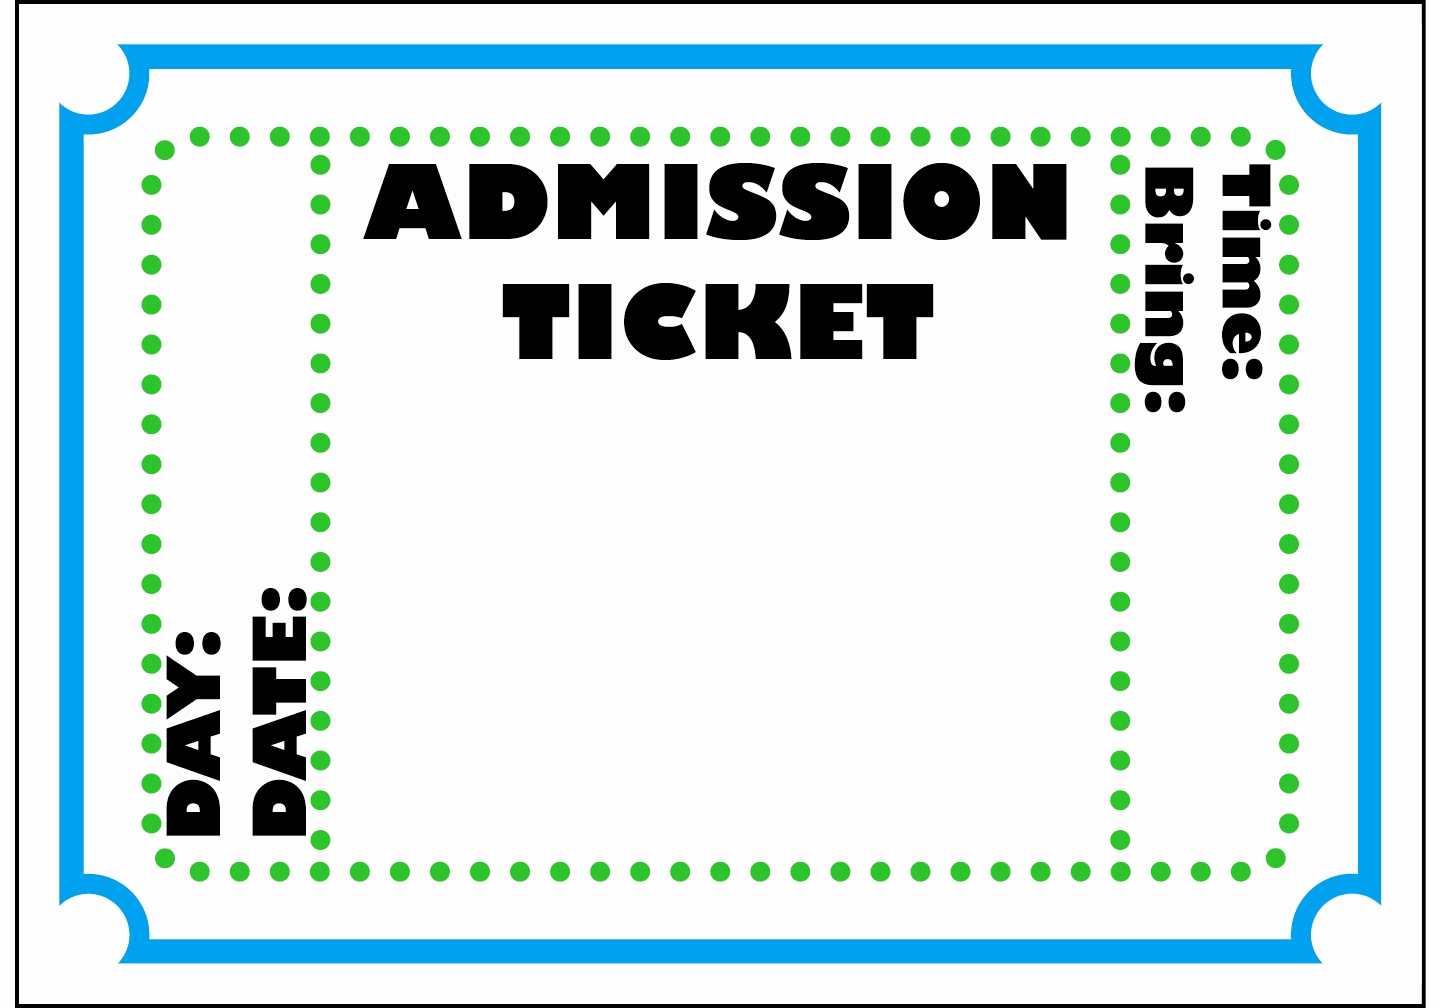 Admit One Ticket Template Fresh Admit E Ticket Template Example Mughals